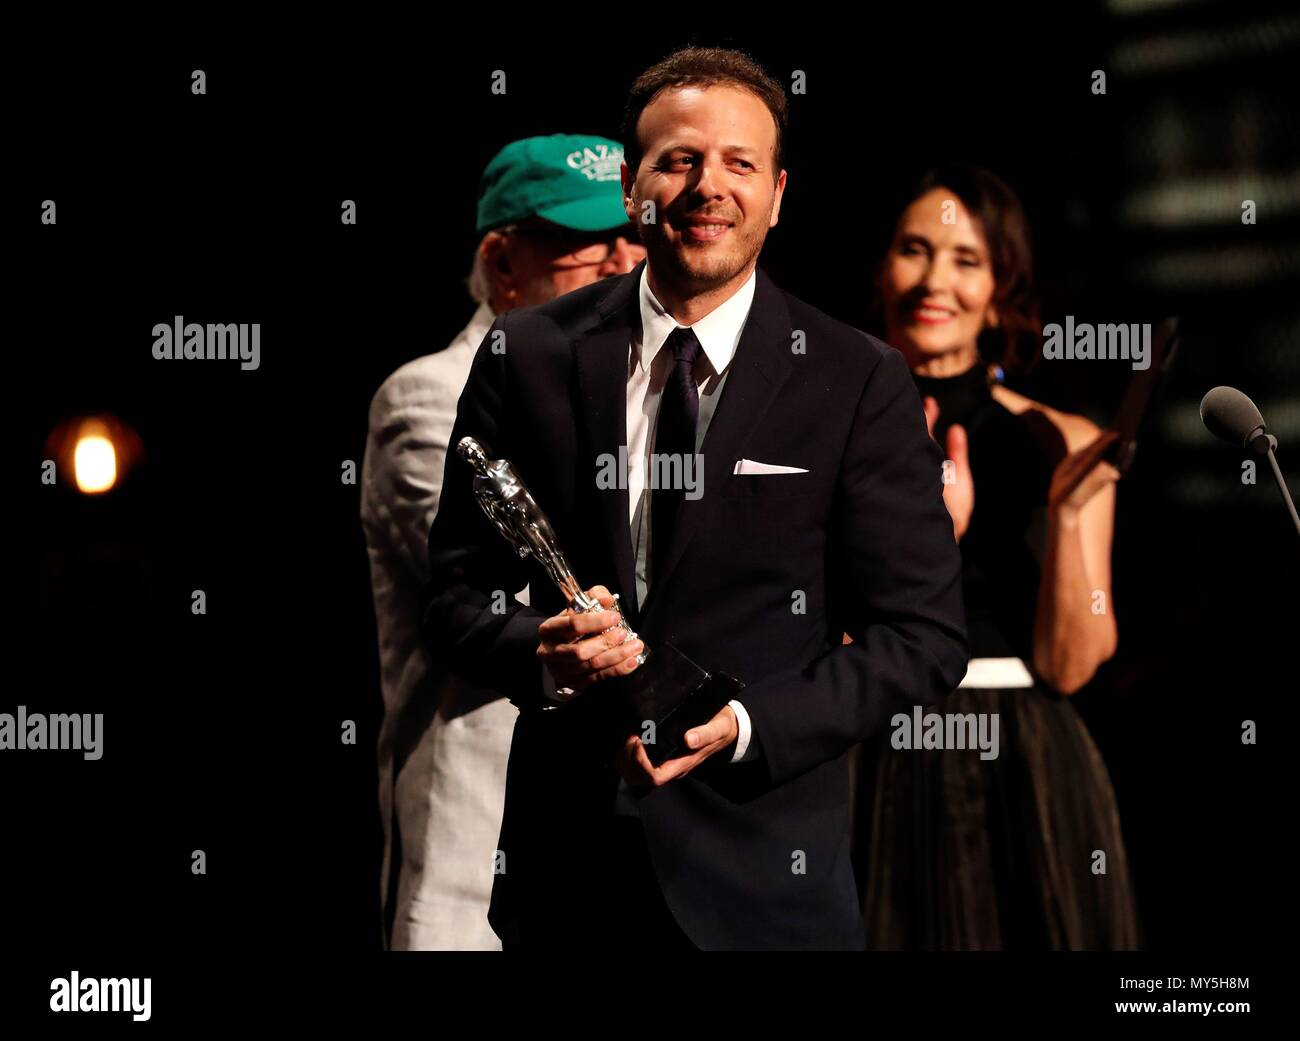 Mexican film director Amat Escalante receives the Arial Award for the Best Director during Mexico's 60th Ariel Film Awards handover ceremony held in Mexico City, Mexico, 05 June 2018 (issued on 06 June). EFE/ Jorge Núñez - Stock Image